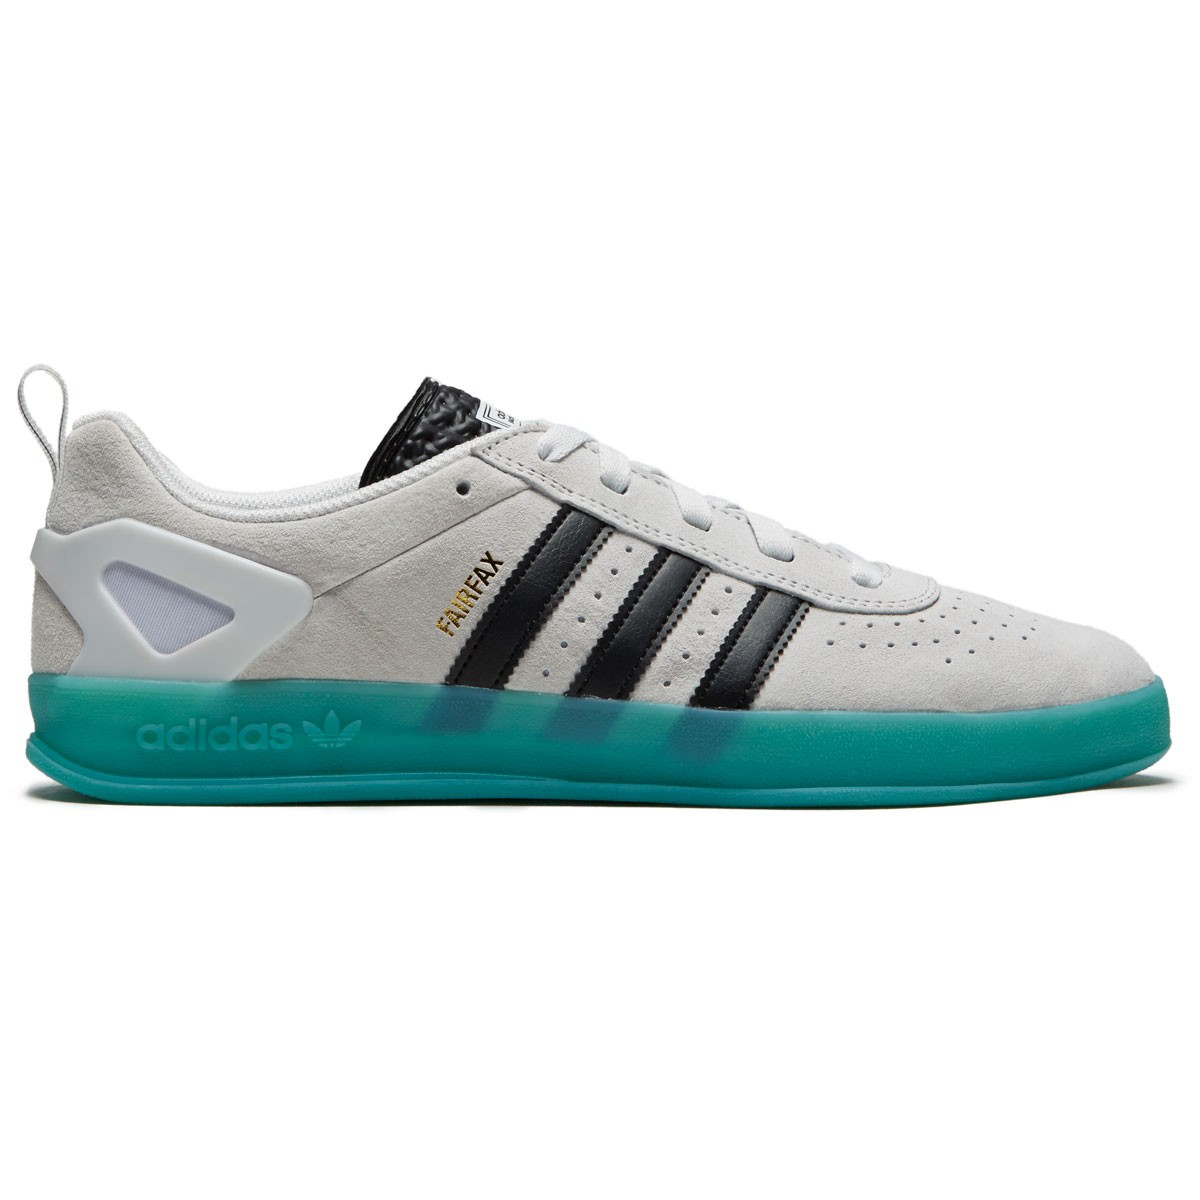 0b1be9daae4e Adidas X Palace Pro Benny Shoes - White Black Bright Cyan - 10.0